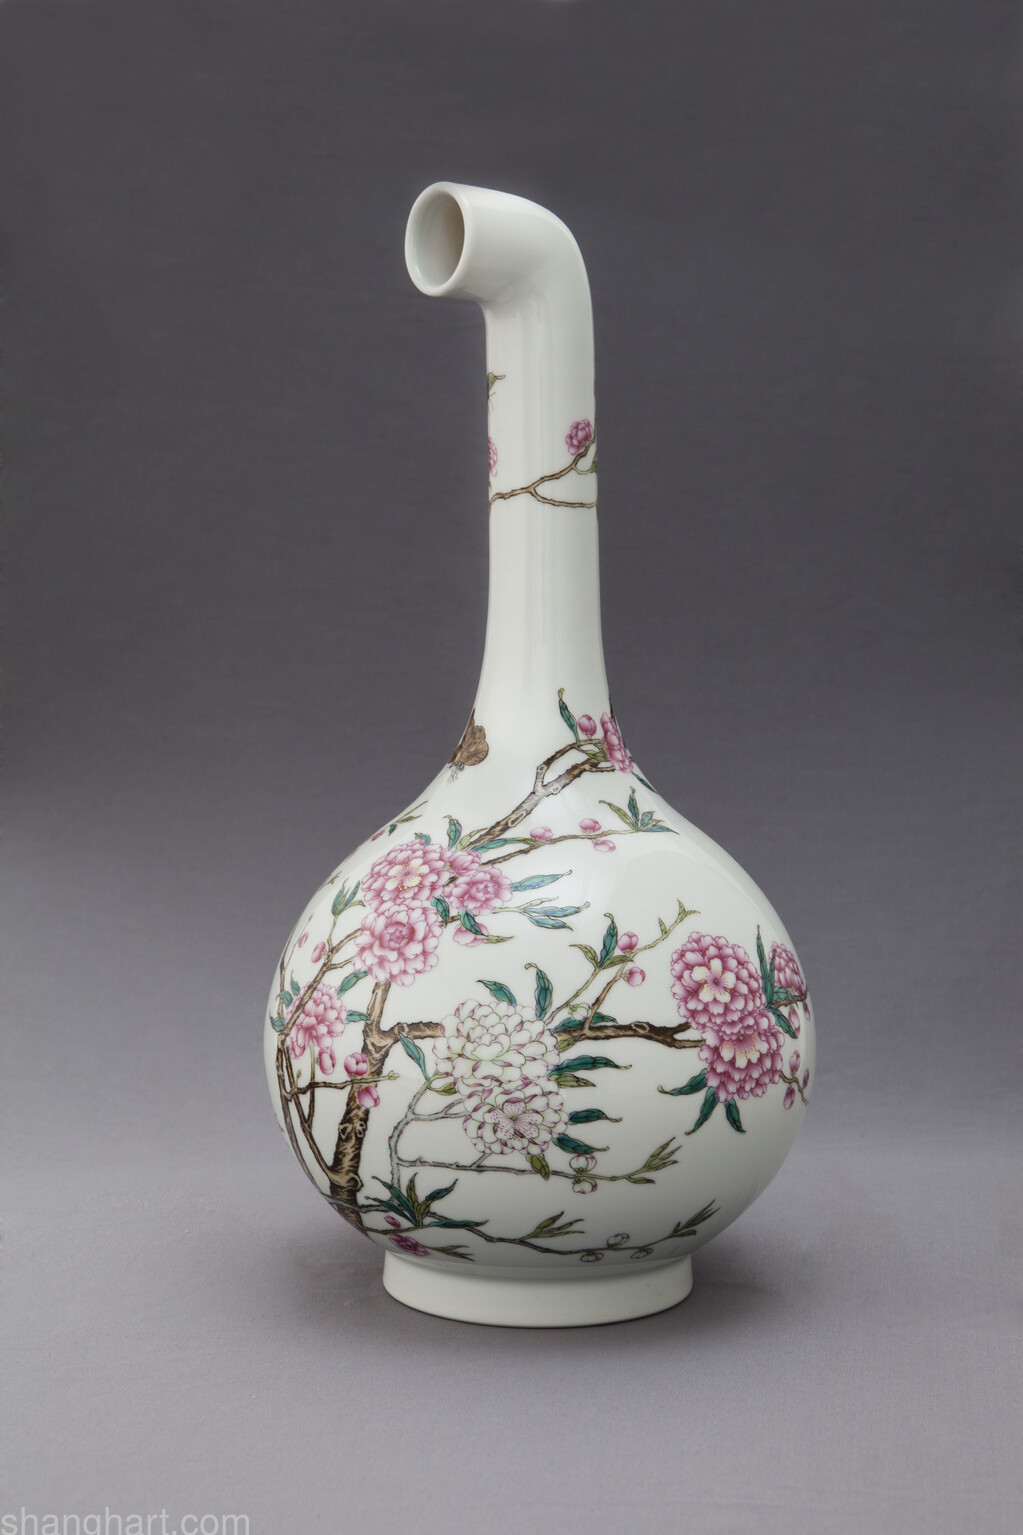 Madein curved vase famille rose vase with a straight neck and madein curved vase famille rose vase with a straight neck and peach blossom design yongzheng period qing dynasty reviewsmspy